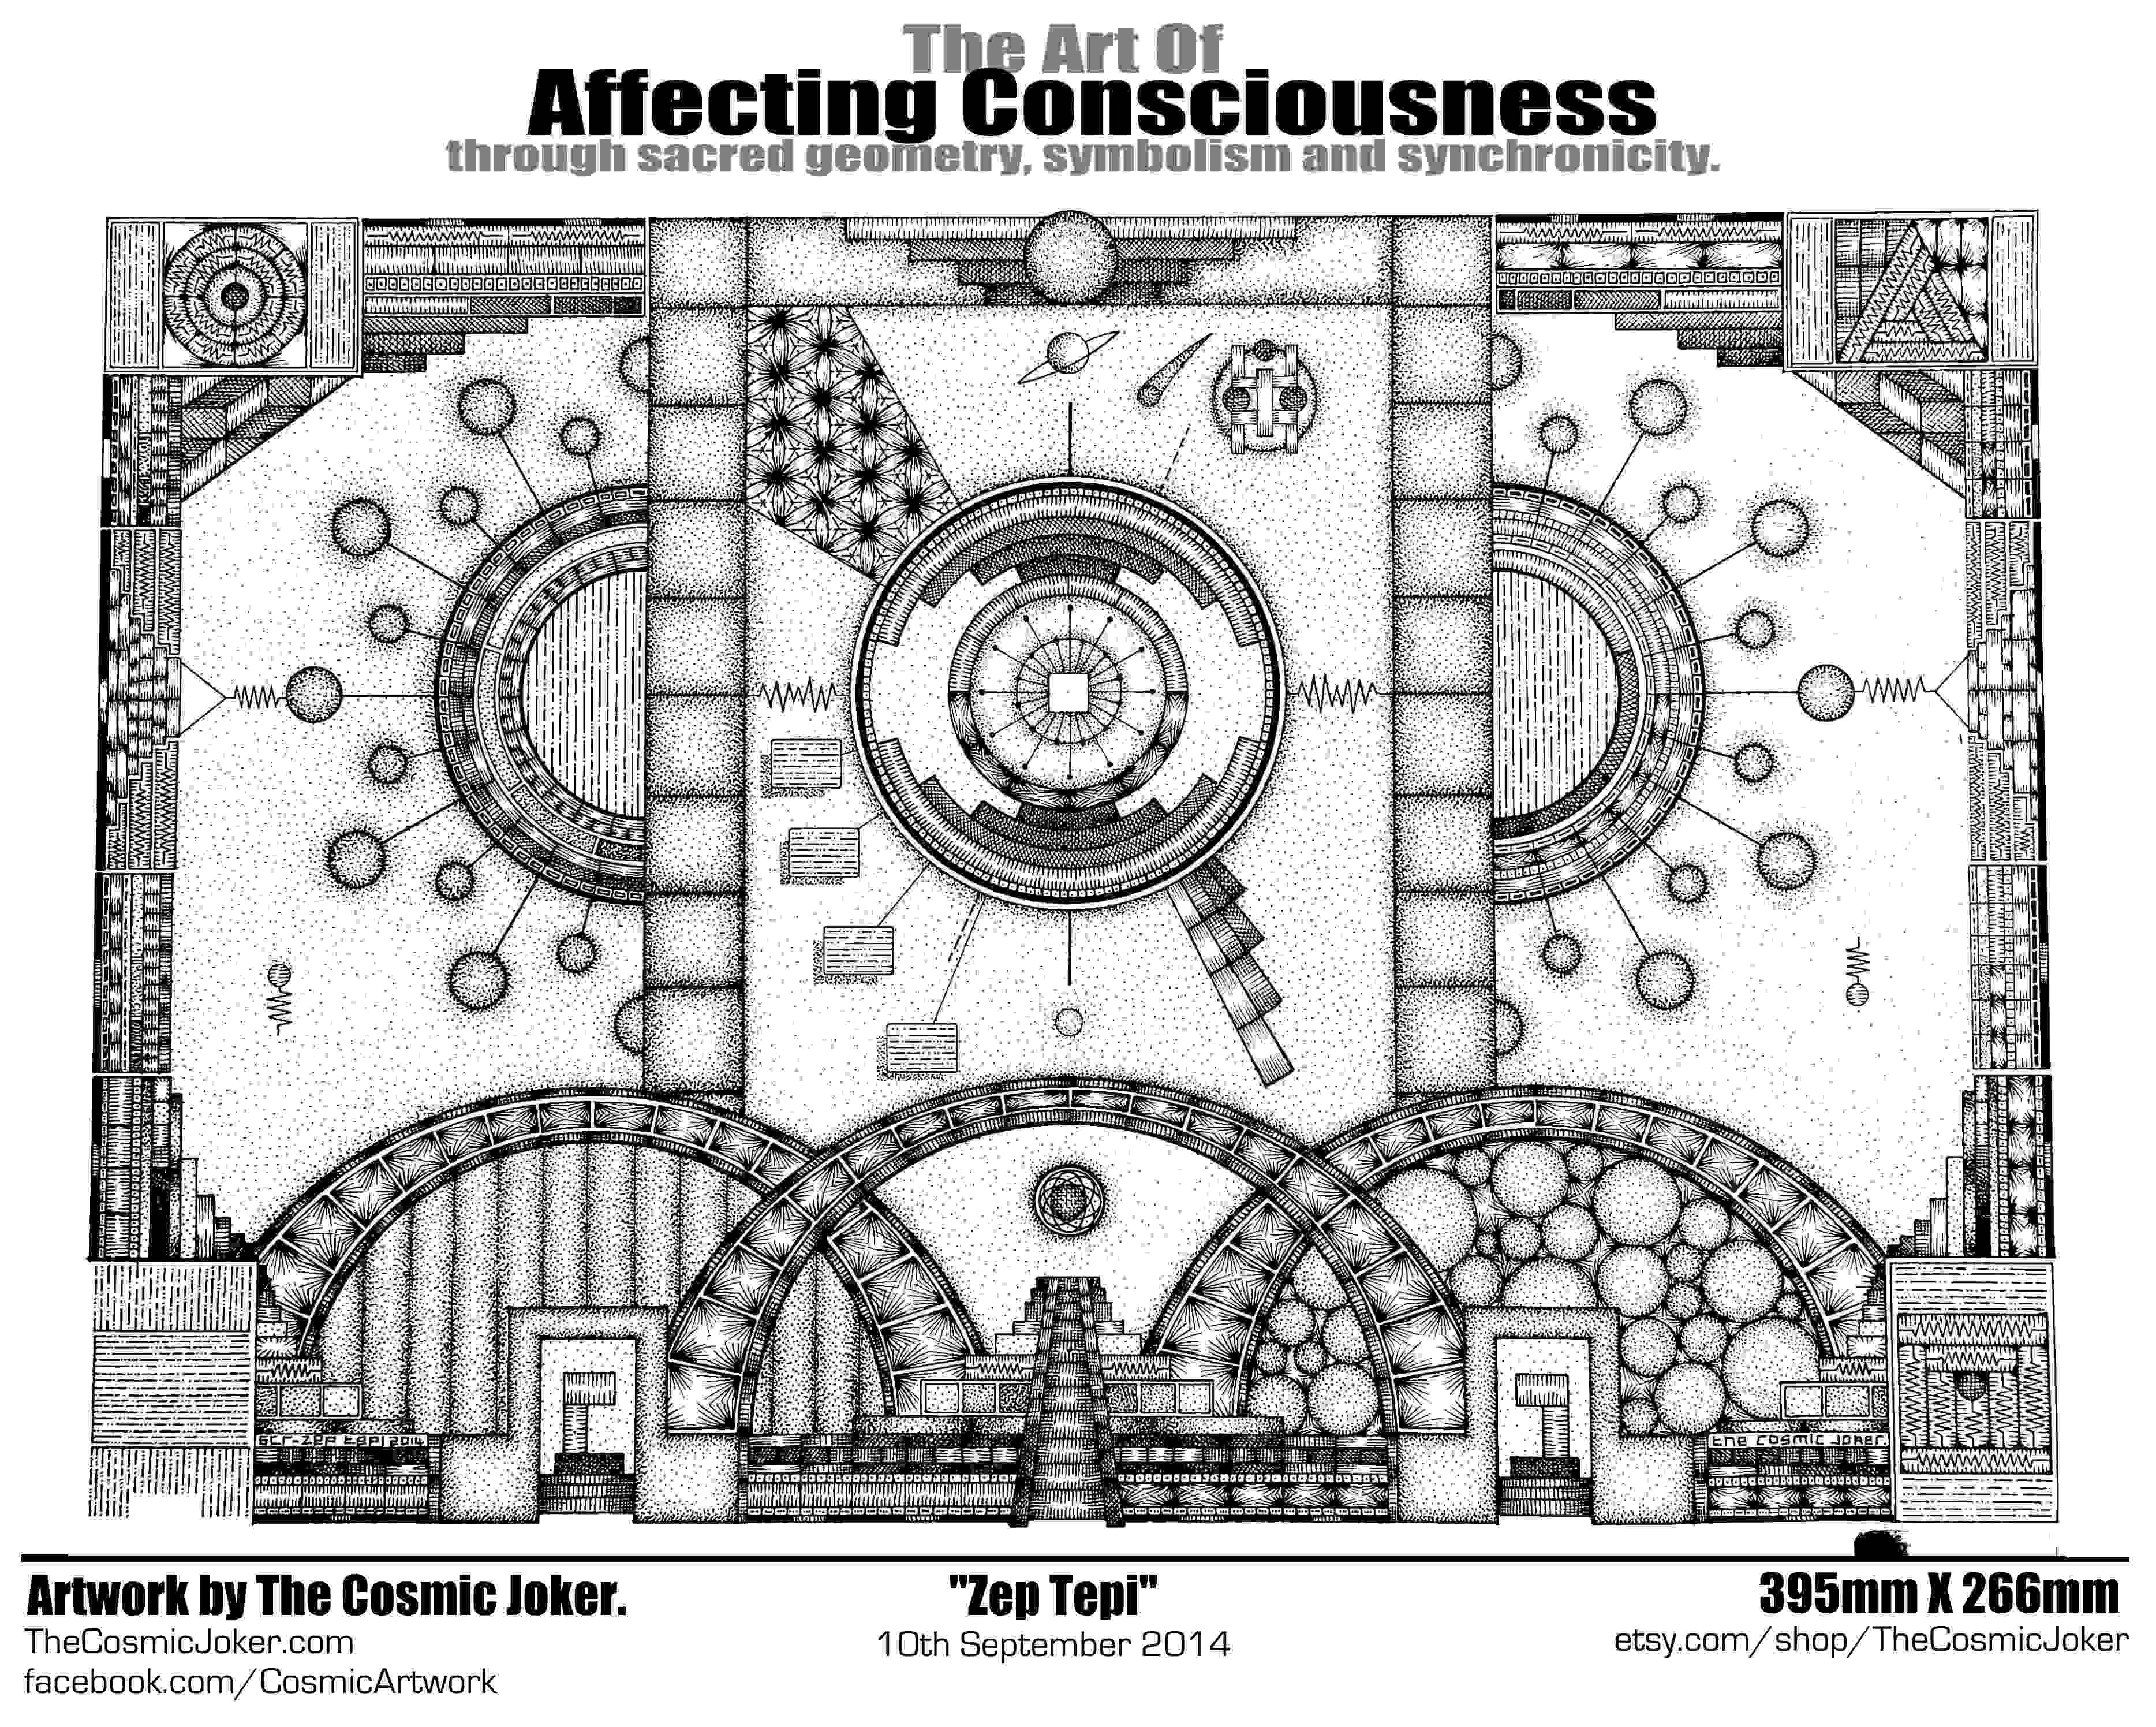 Laird scranton page 4 the art of affecting consciousness zep tepi biocorpaavc